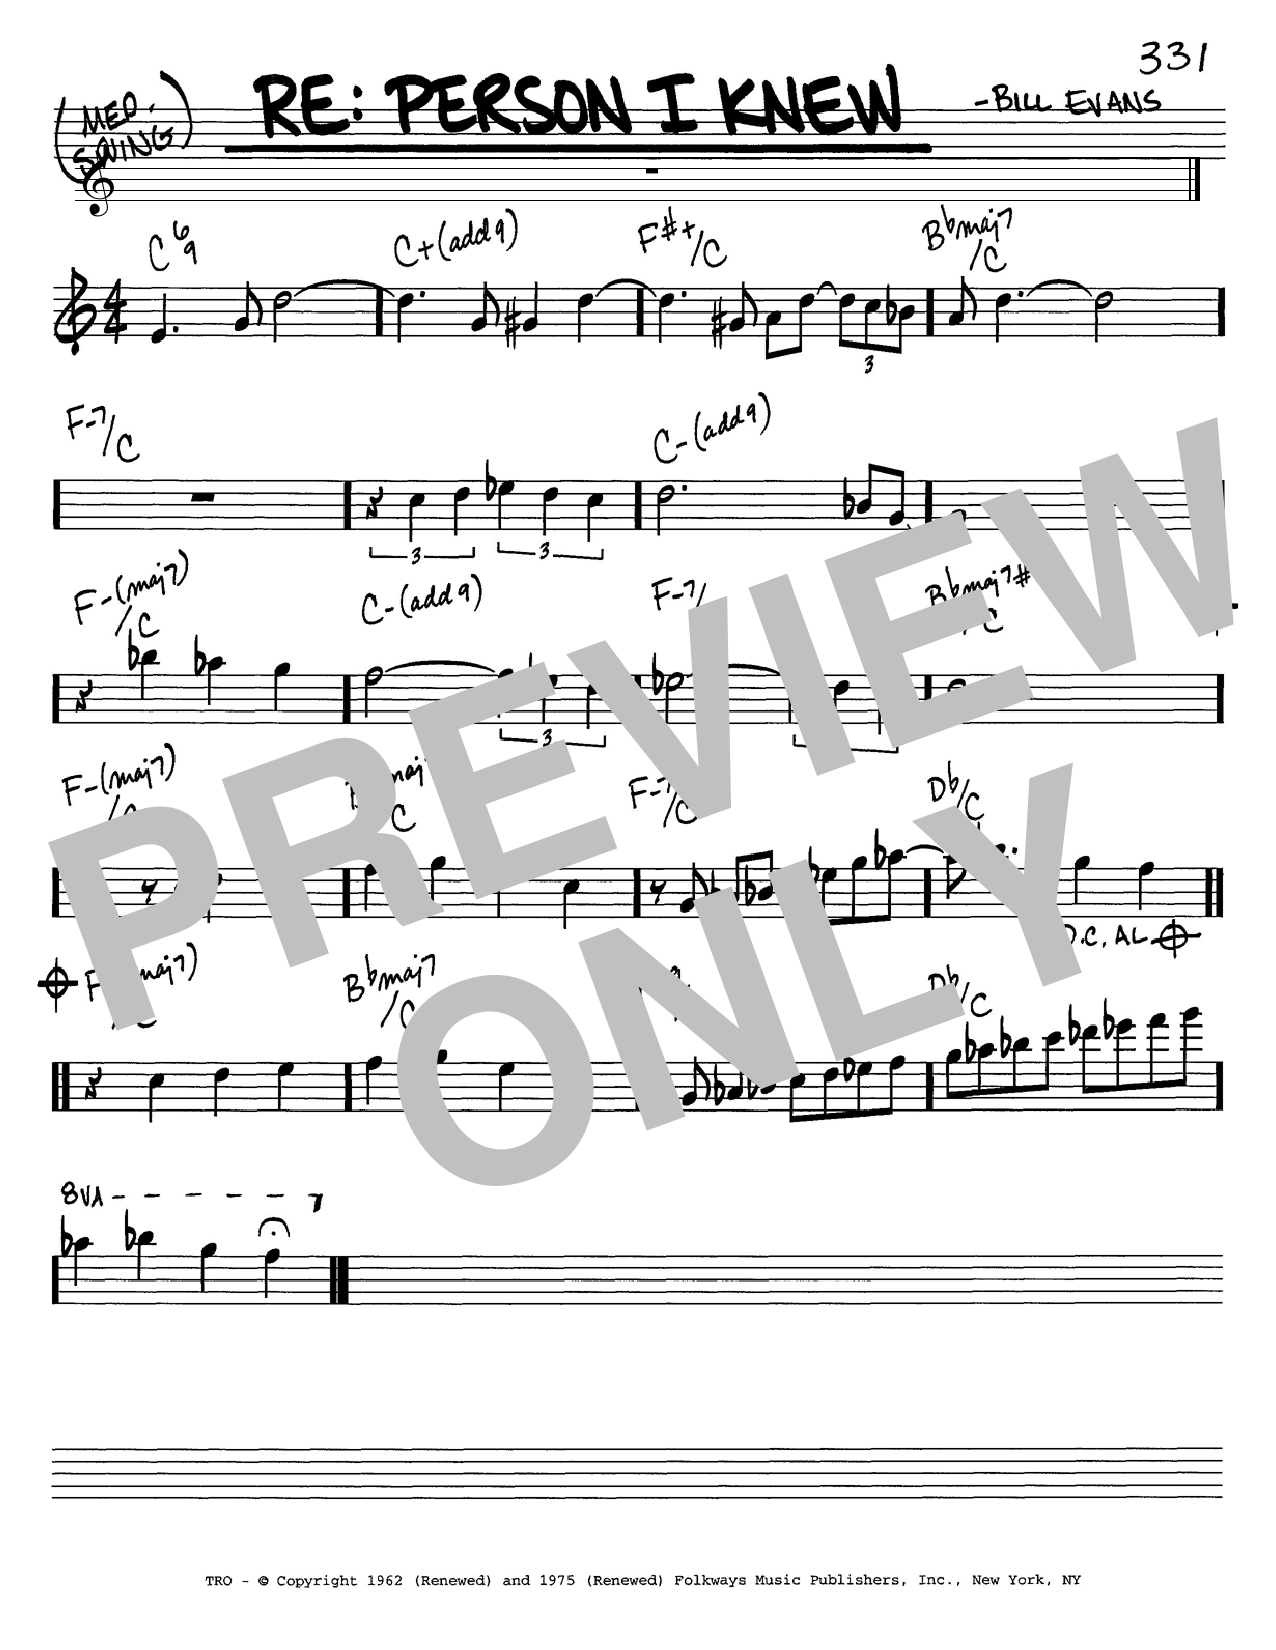 Bill Evans Re: Person I Knew sheet music notes and chords. Download Printable PDF.